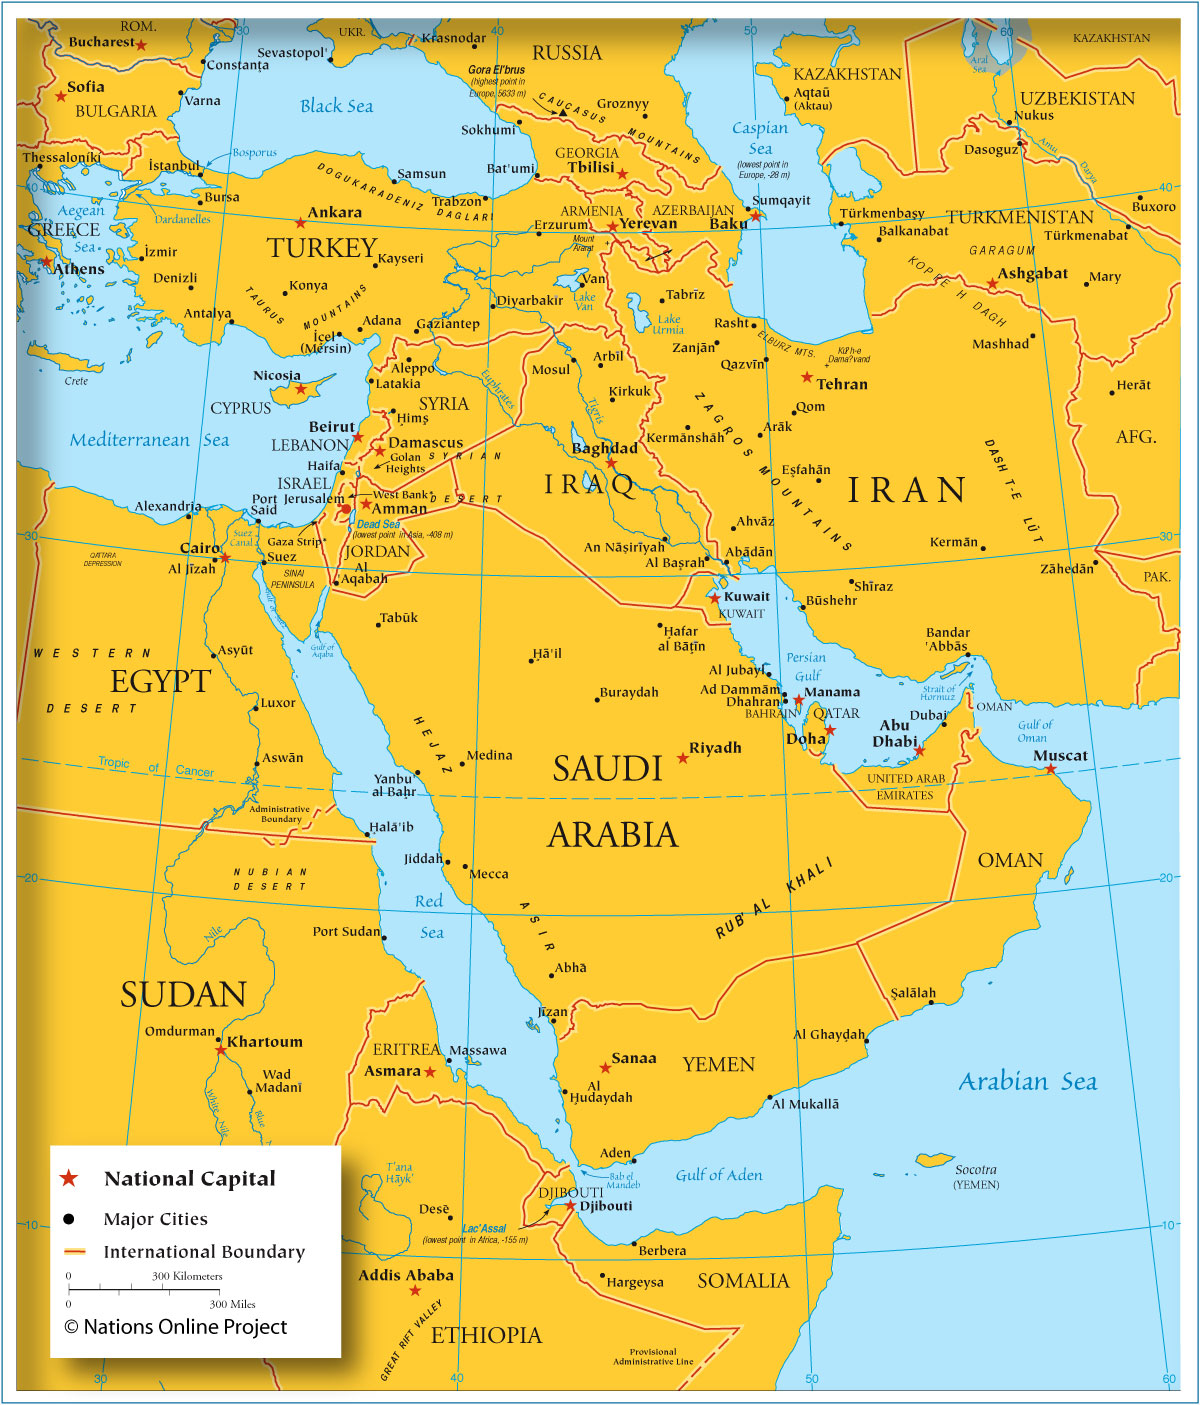 Map of Countries in Western Asia and the Middle East